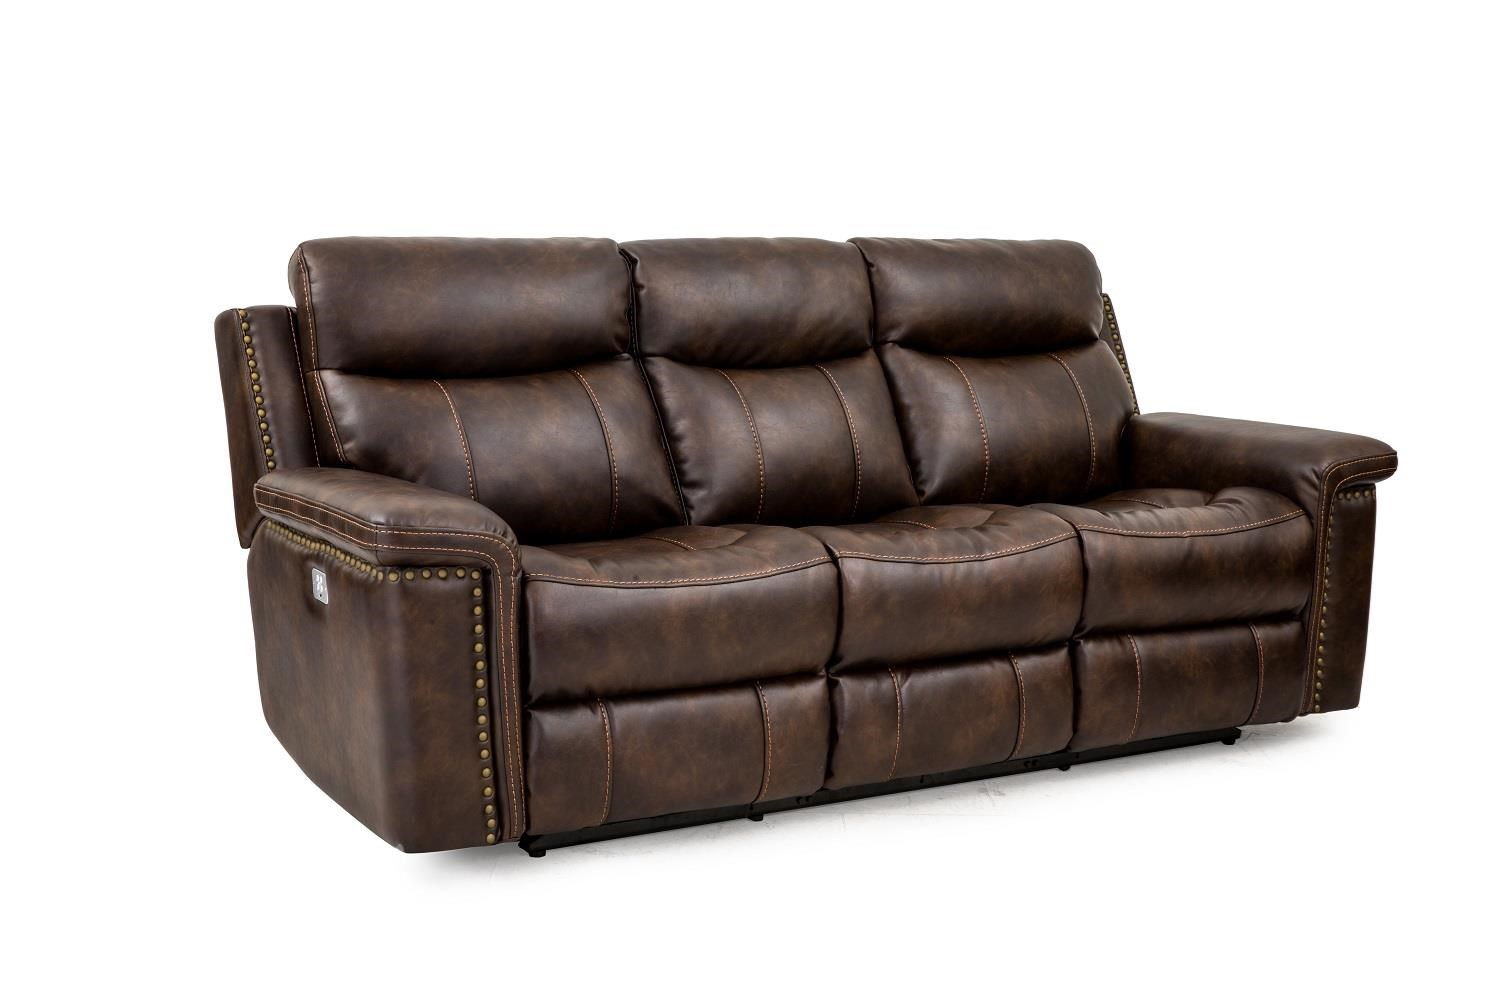 Cheers Sofa Phoenix Xw5258hm L3 2lfeh 3537 Leather Power Reclining Sofa With Power Head